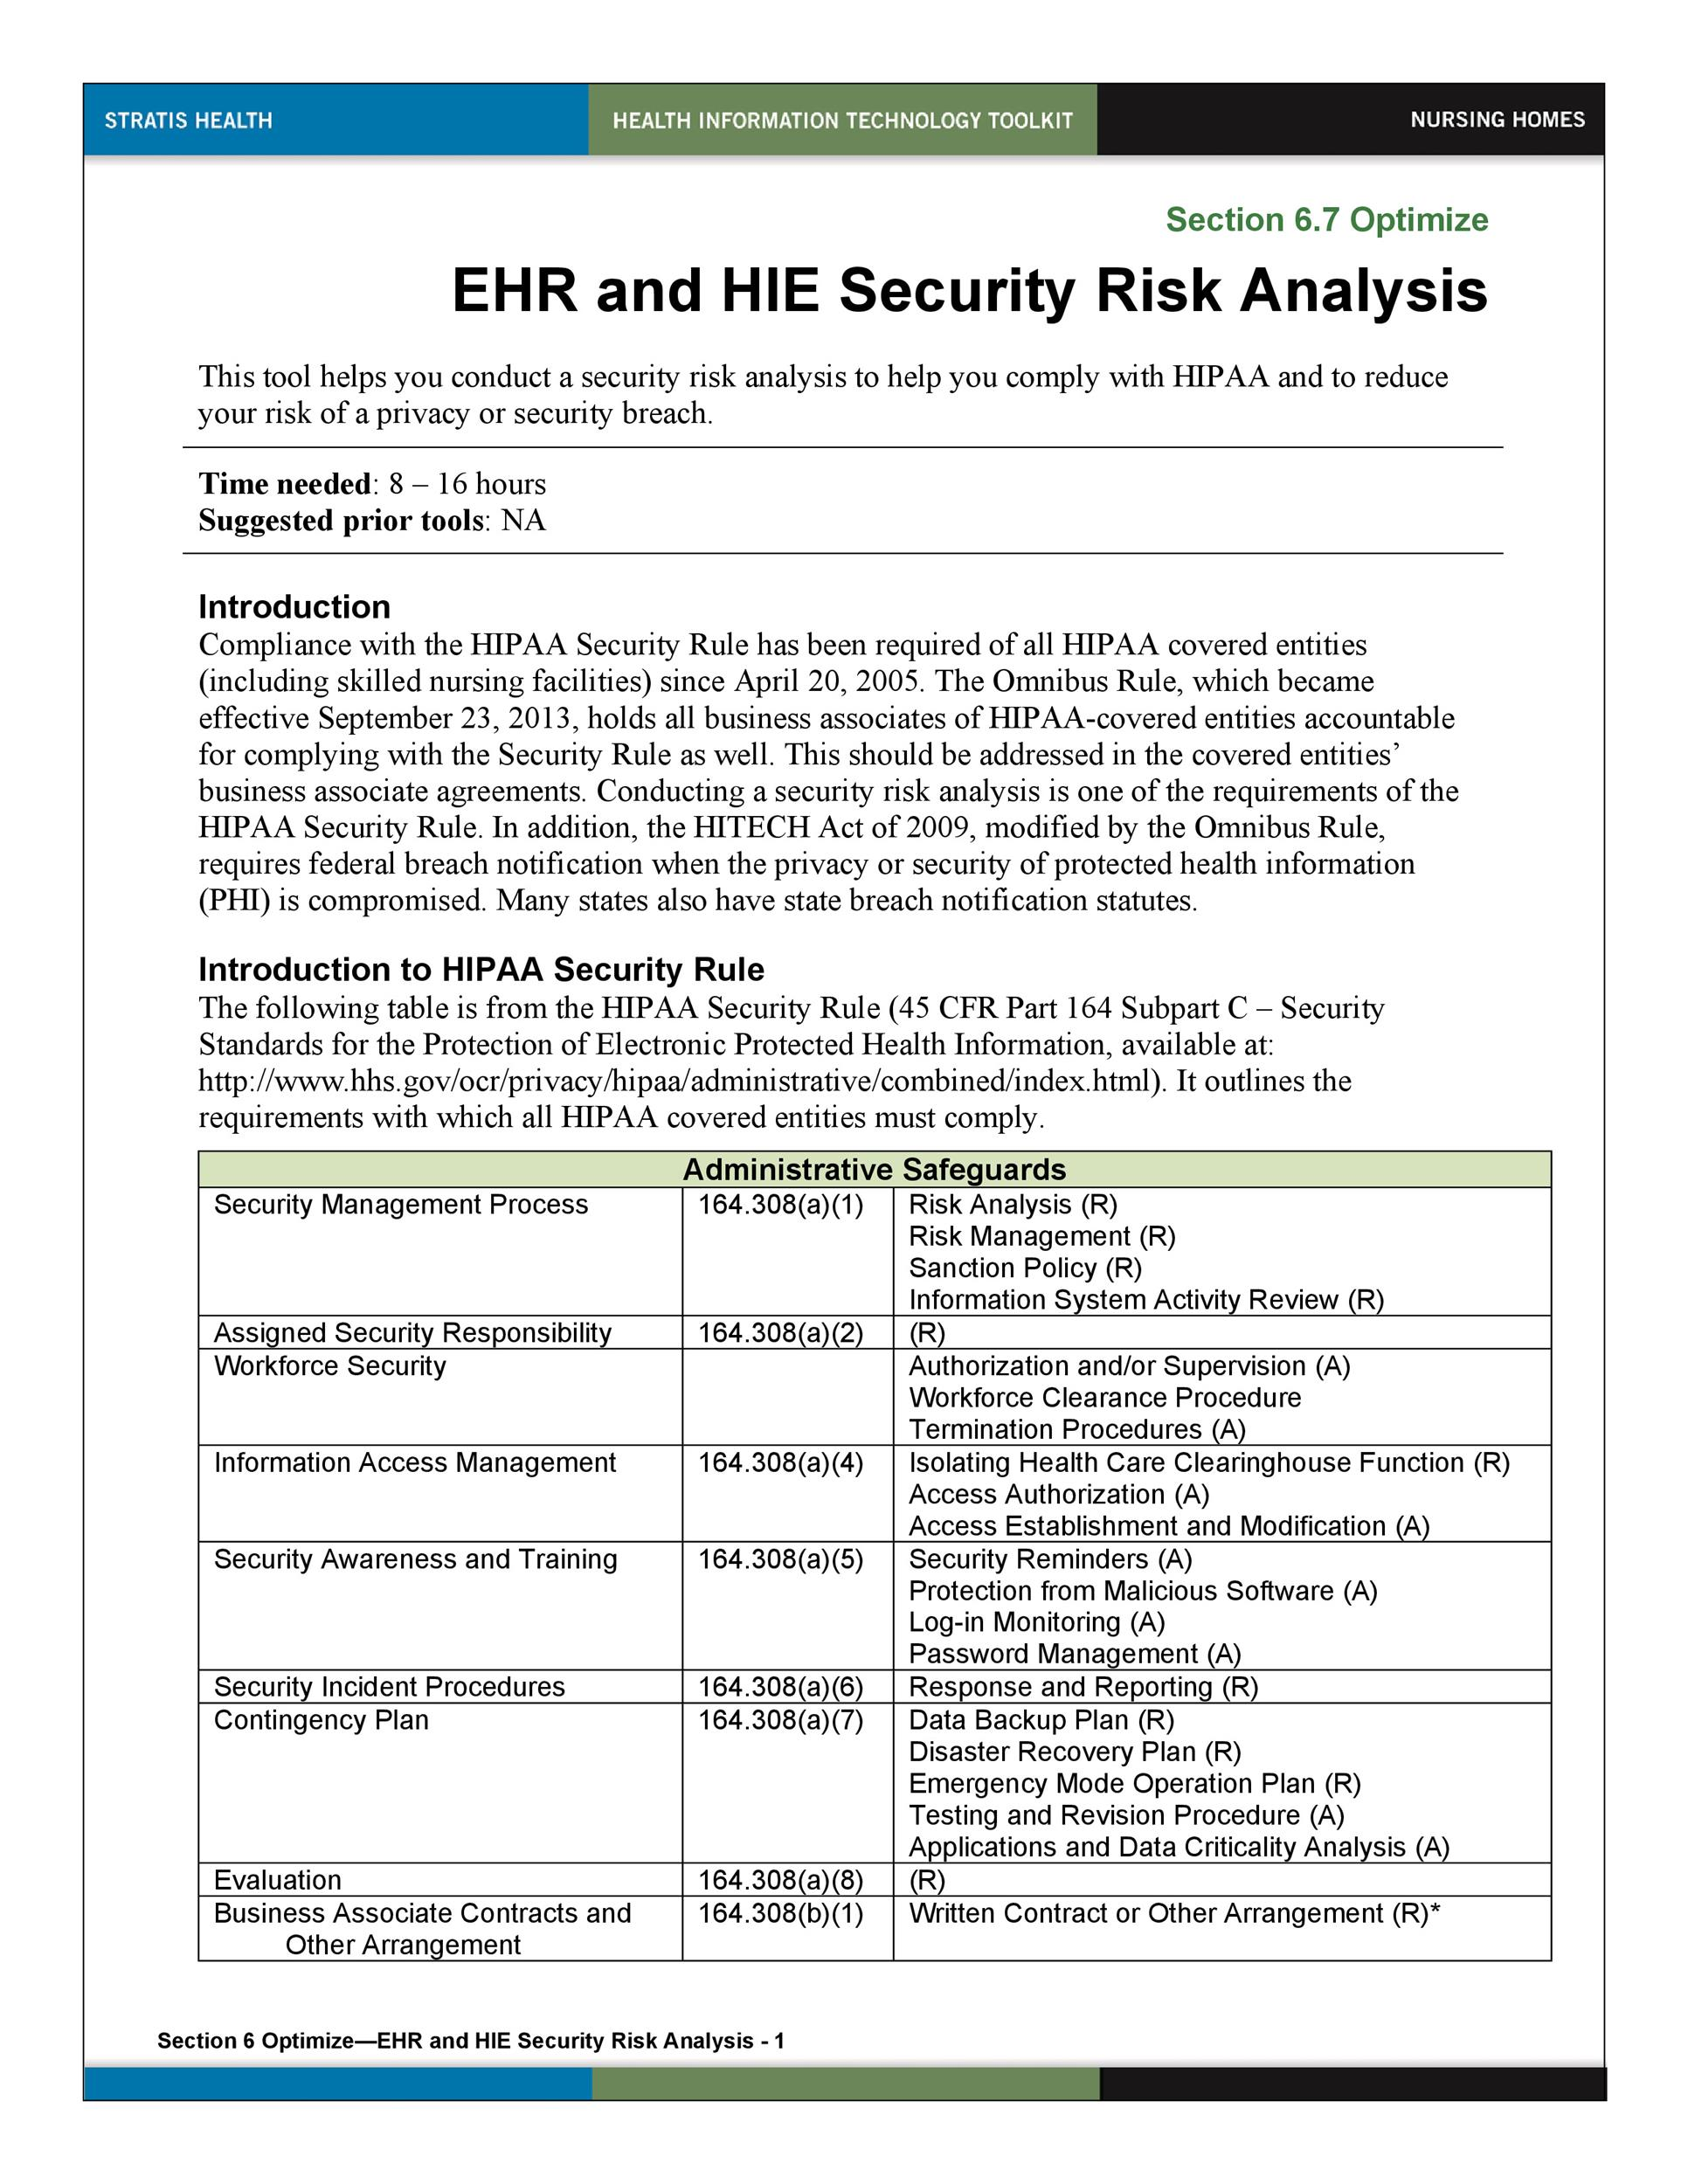 Risk Analysis Templates